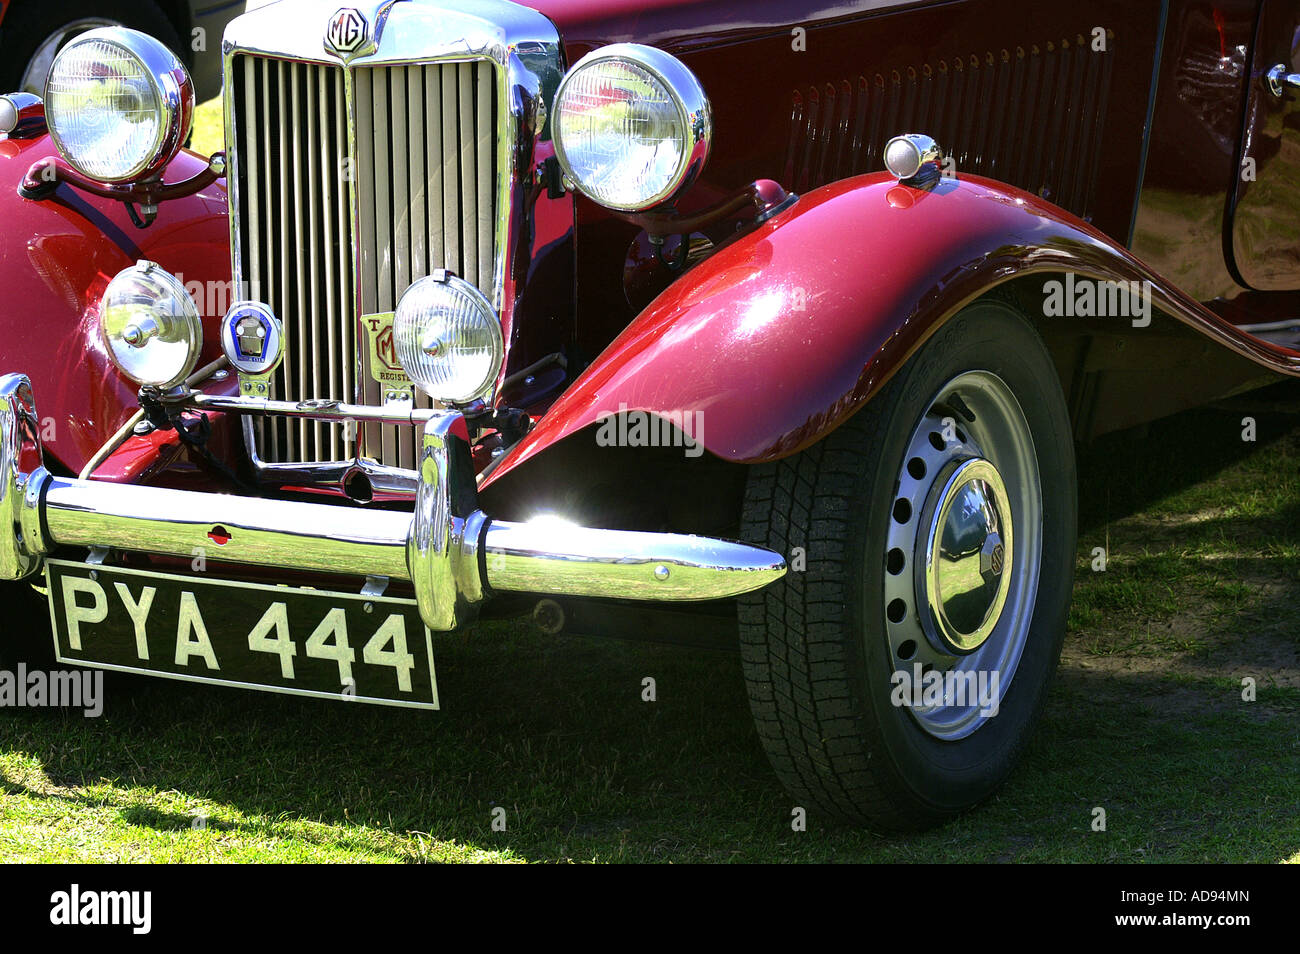 MG classic car at car show in the UK - Stock Image